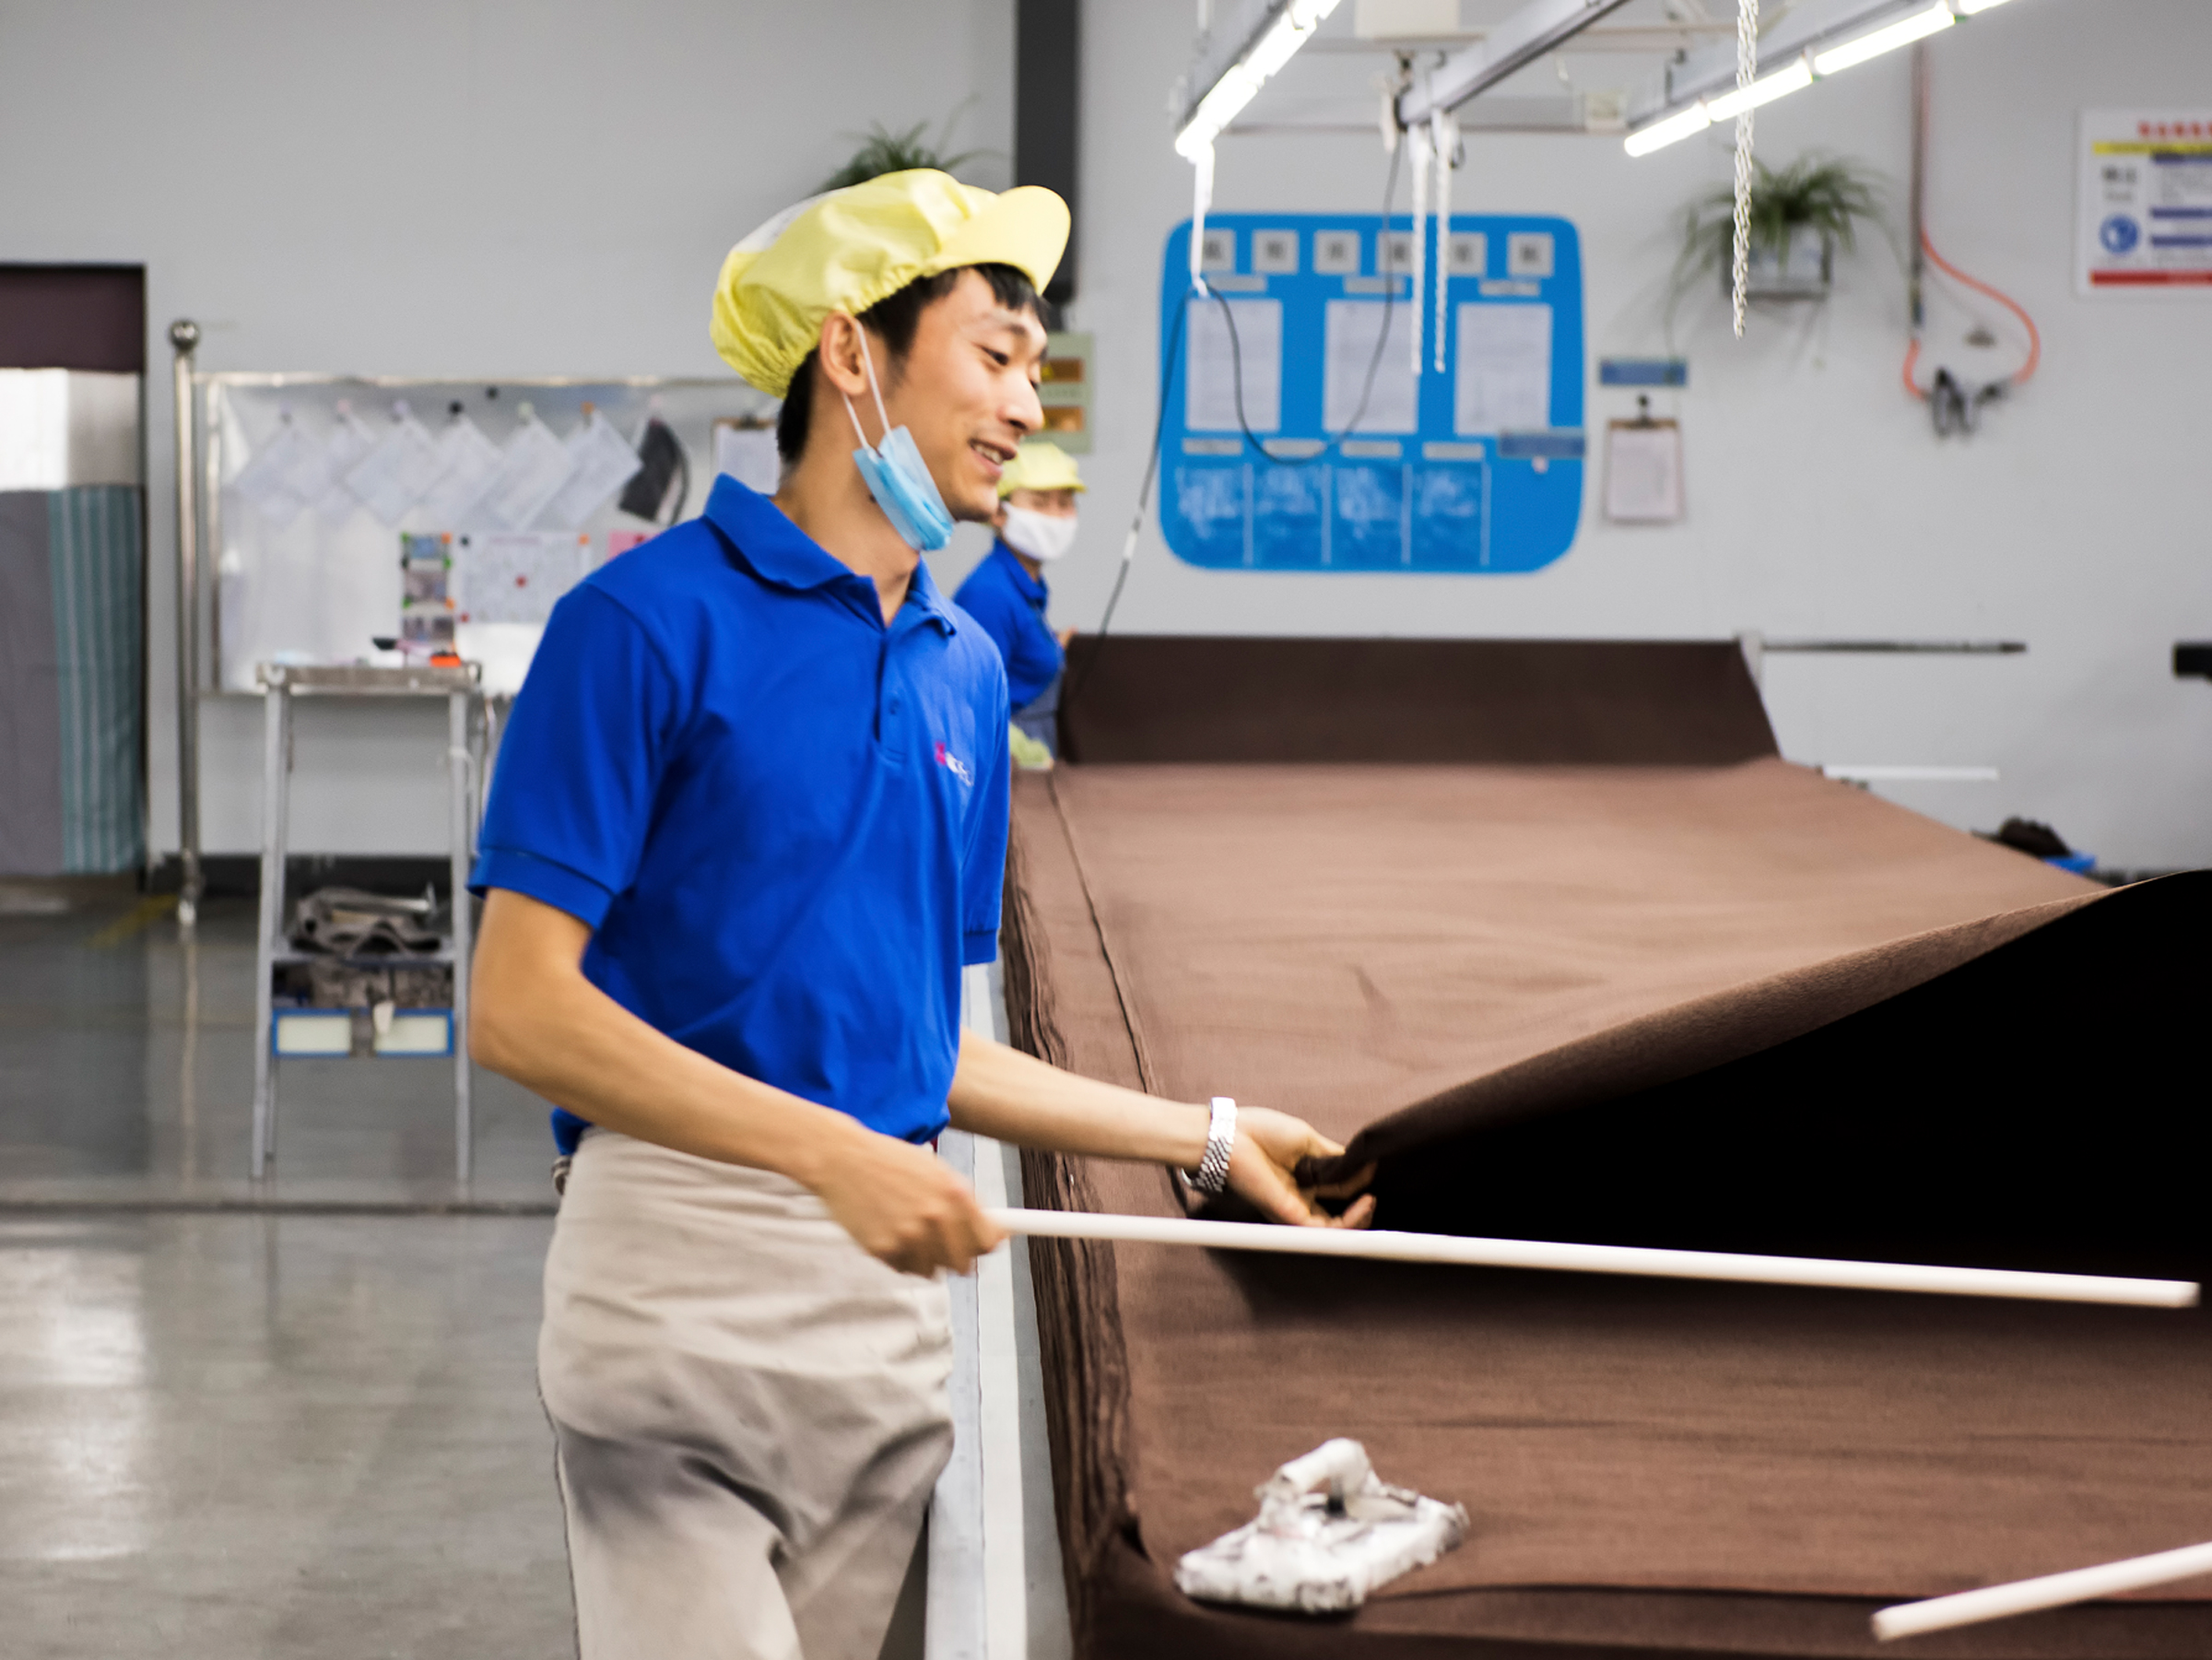 A man wearing a blue shirt, a yellow cap, and a light blue mask is busy working in a factory.